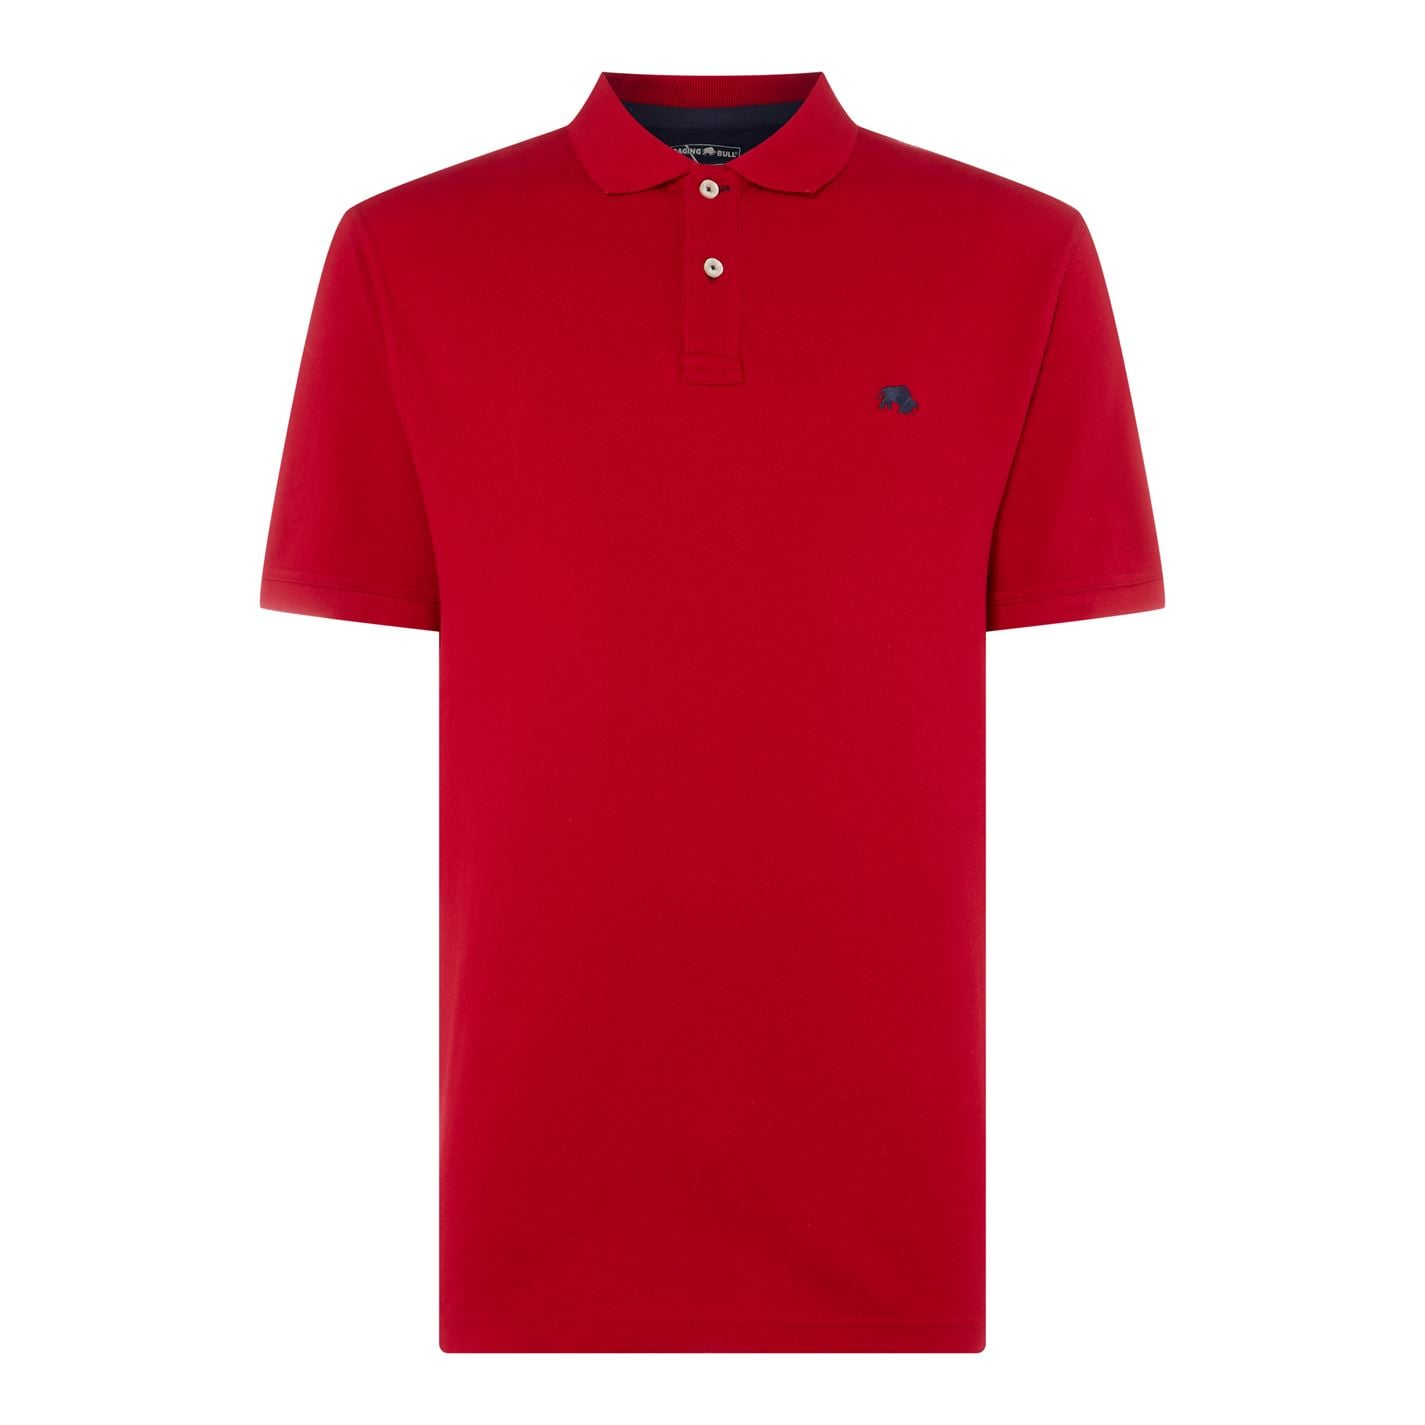 Mergi la Tricouri Polo Raging Bull Signature rosu